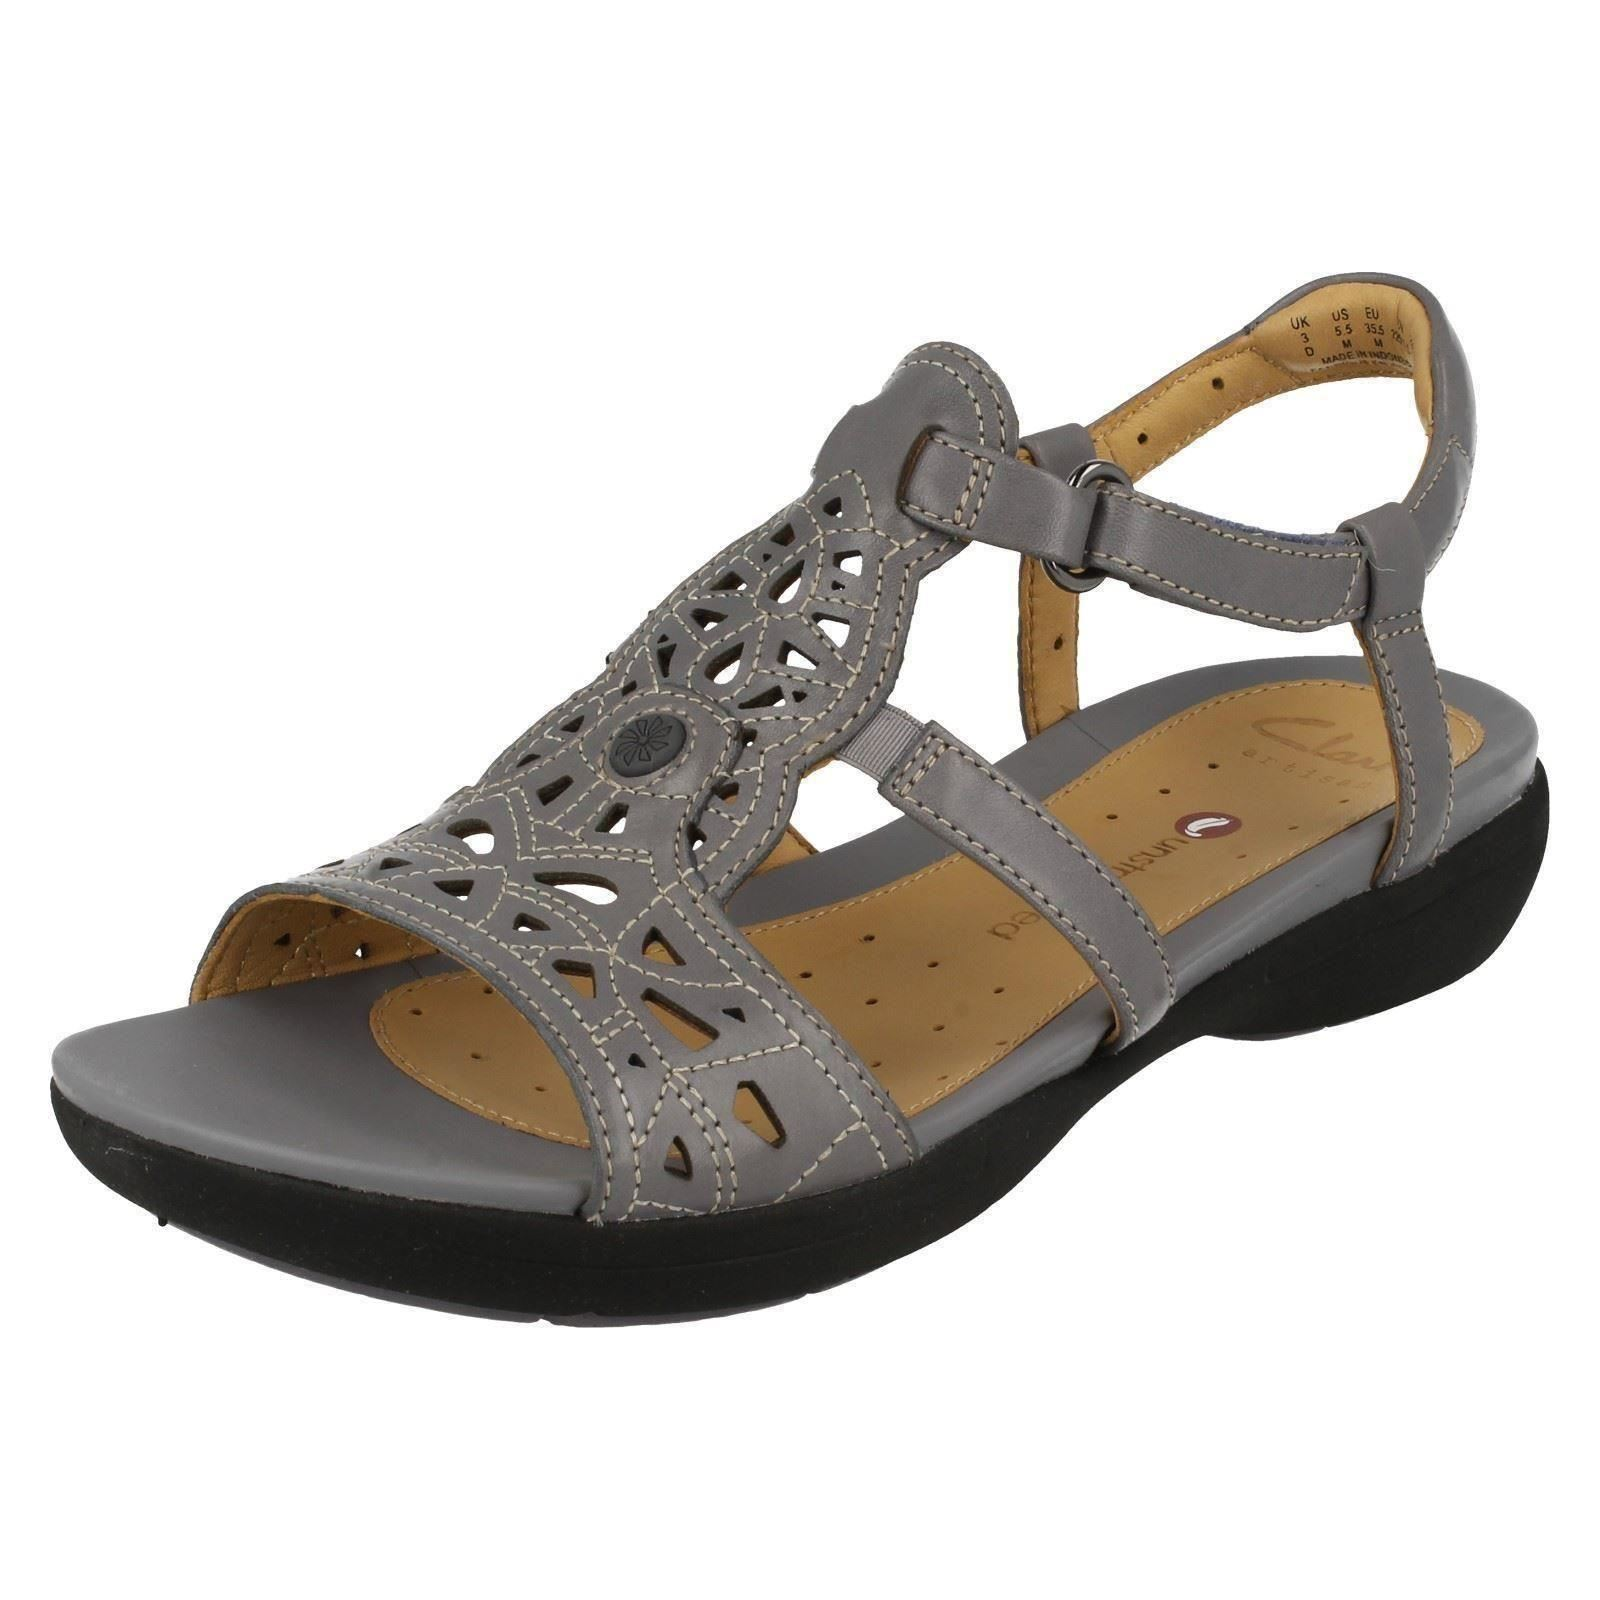 91908167d50 Women s Clarks Un Valencia Strap Sandals in Grey UK 5   EU 38. About this  product. Picture 1 of 9  Picture 2 of 9 ...